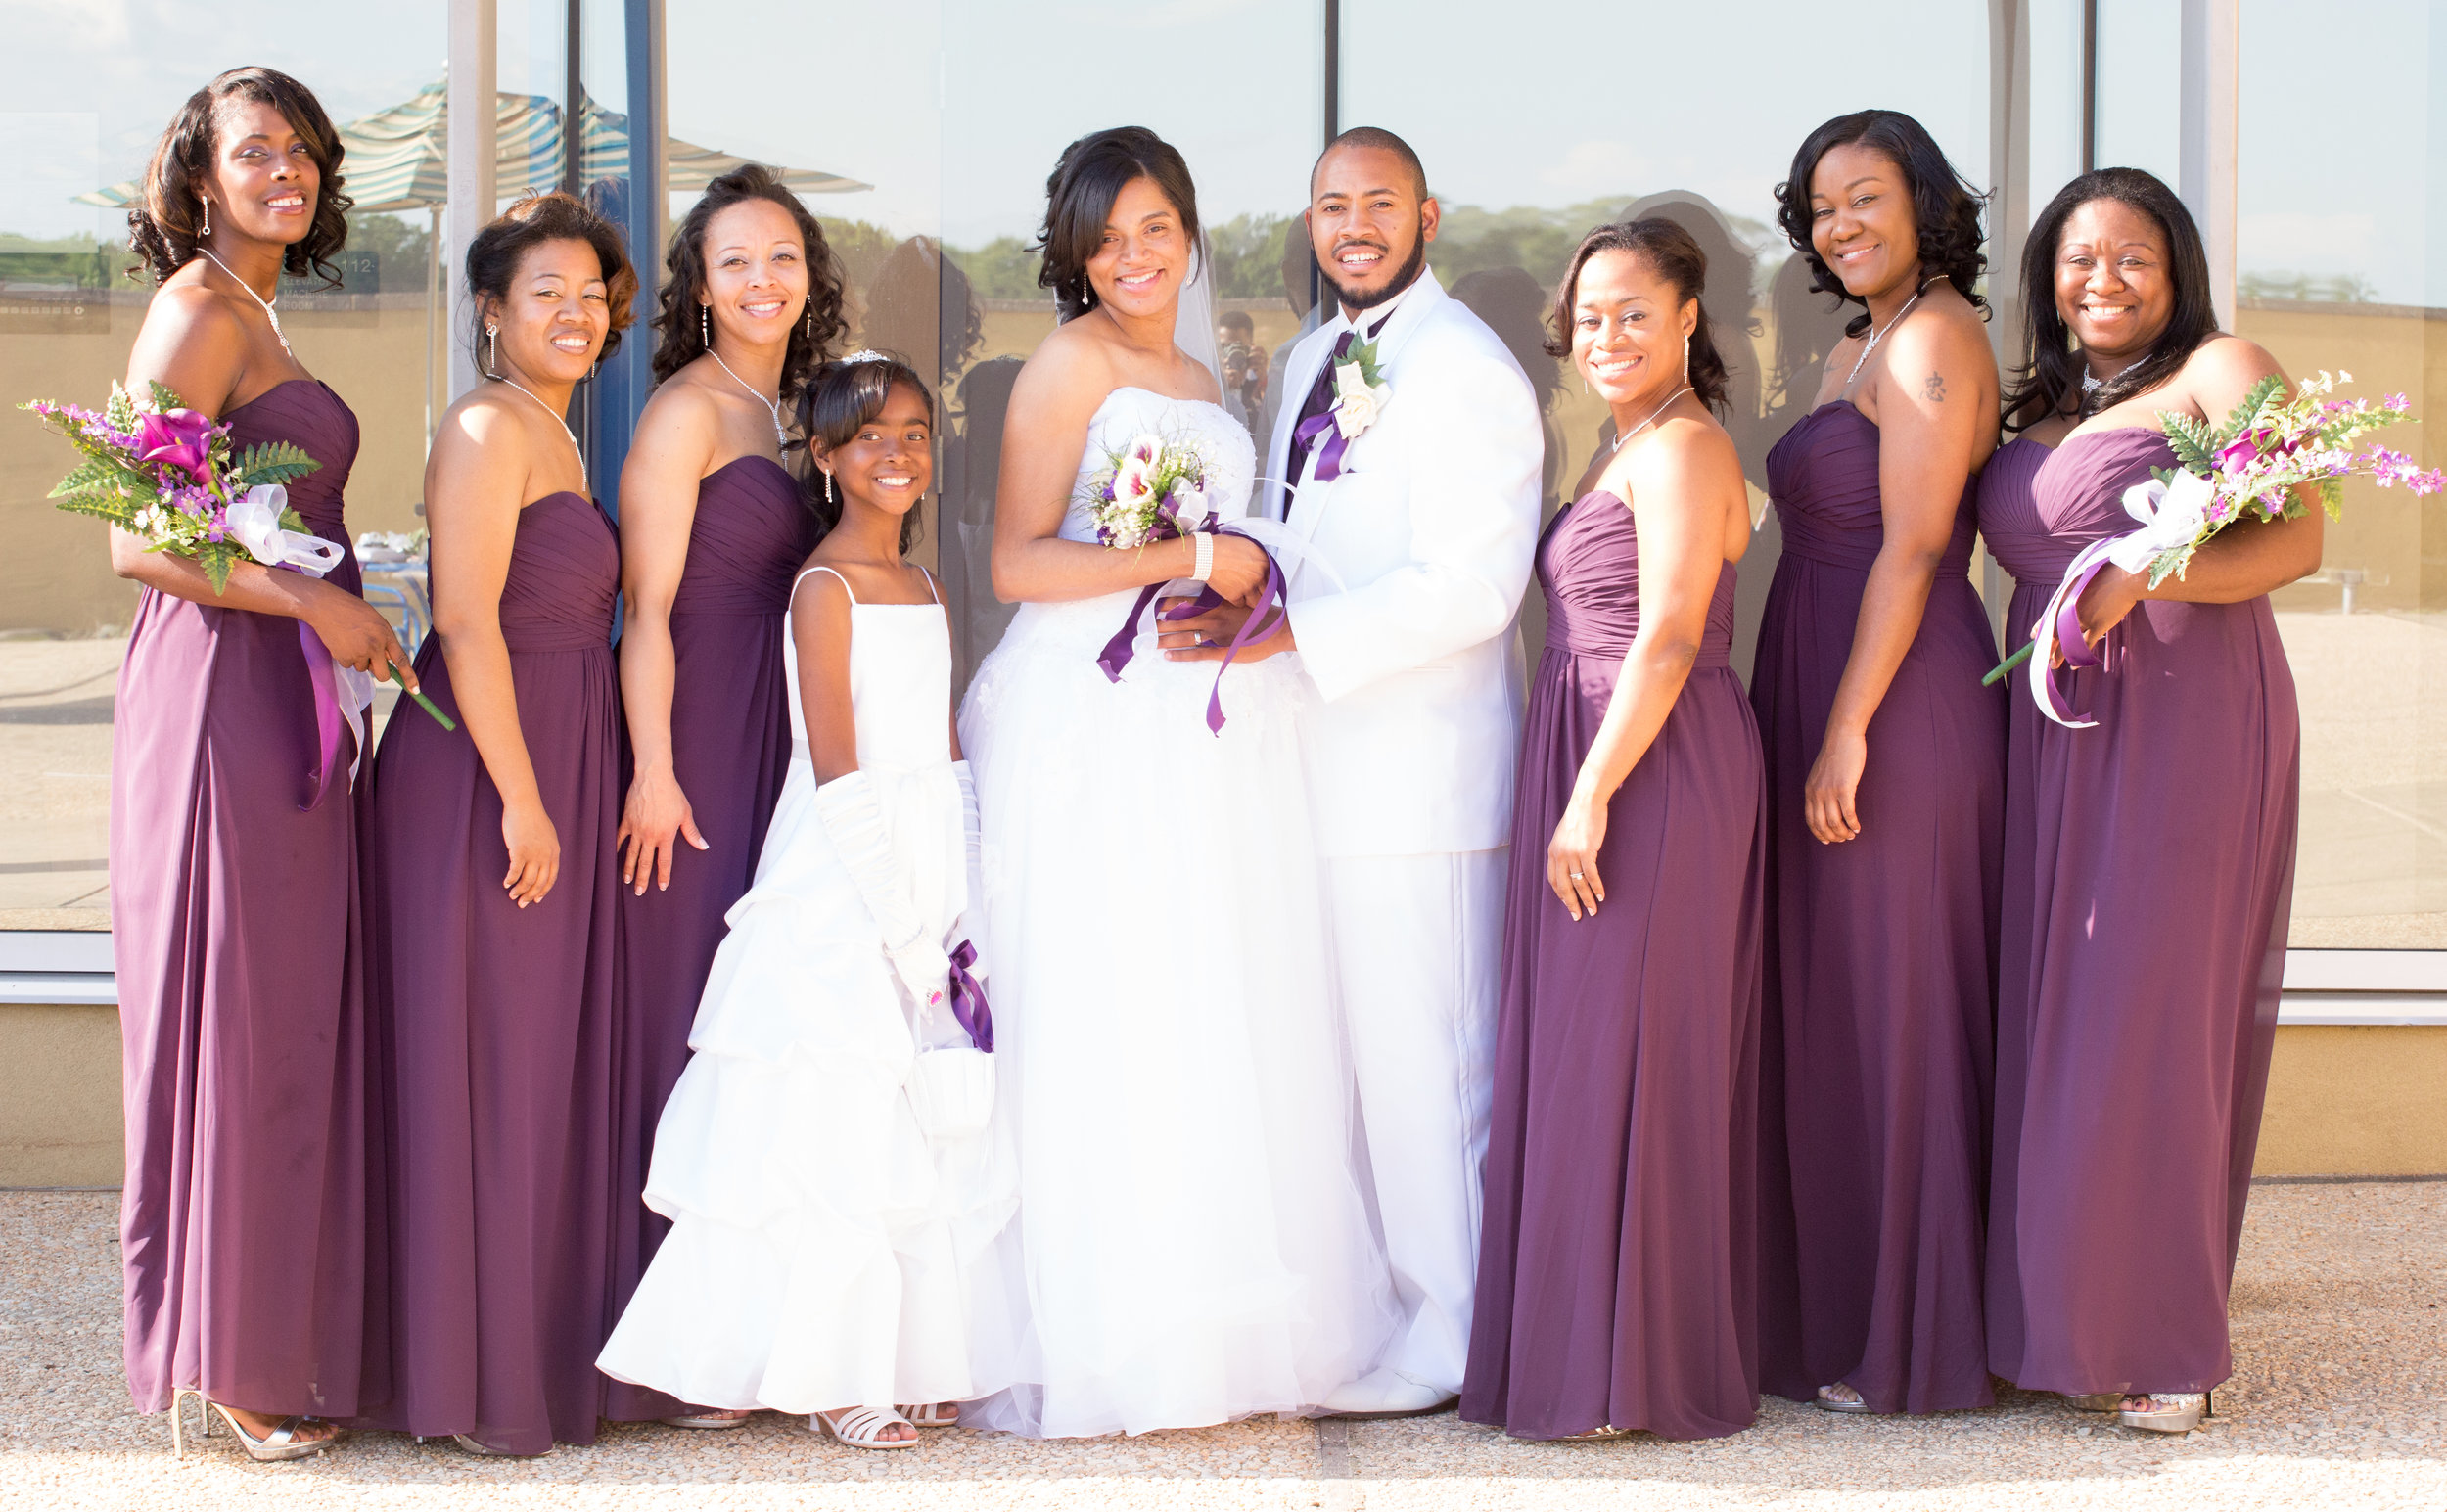 5-24-14_Errol Ebanks_The Finney Wedding_0573.jpg